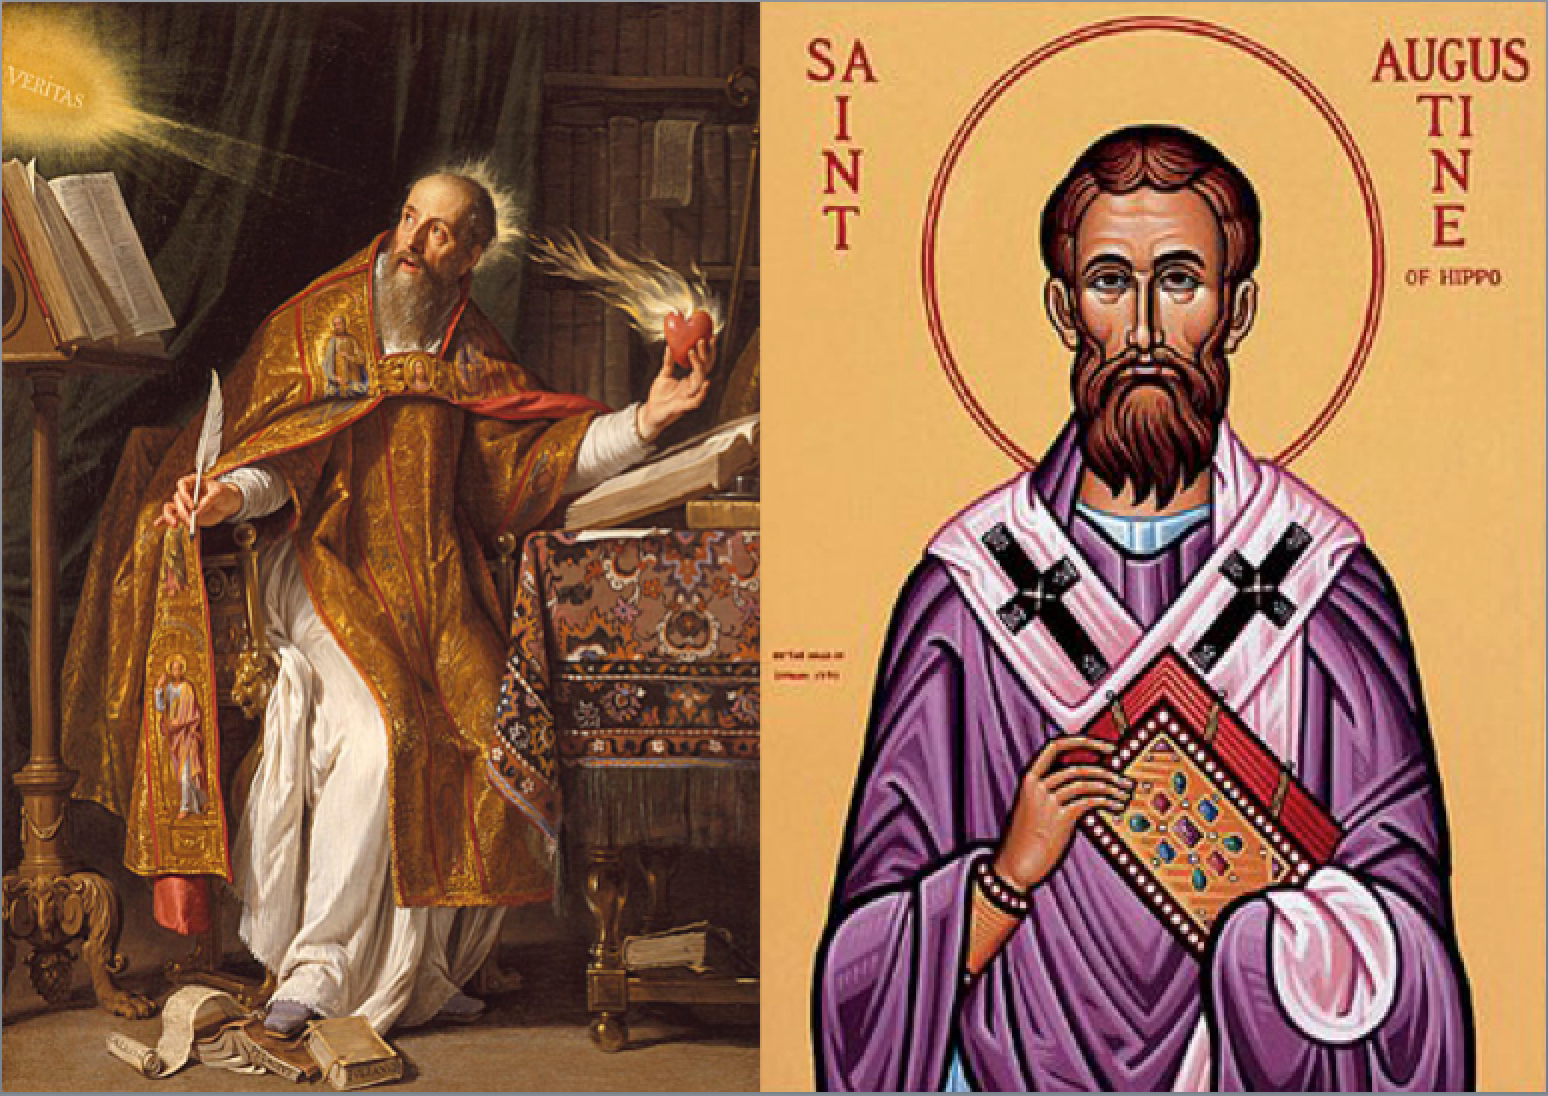 st augustine of hippo Augustine of hippo (354-430 ad) took great pains to create and project a powerful image of himself beyond the churches and towns where he wrote and taught in roman north africa he succeeded in this self-presentation beyond his wildest dreams april 2001: augustine in algeria: in april, 2001, an.